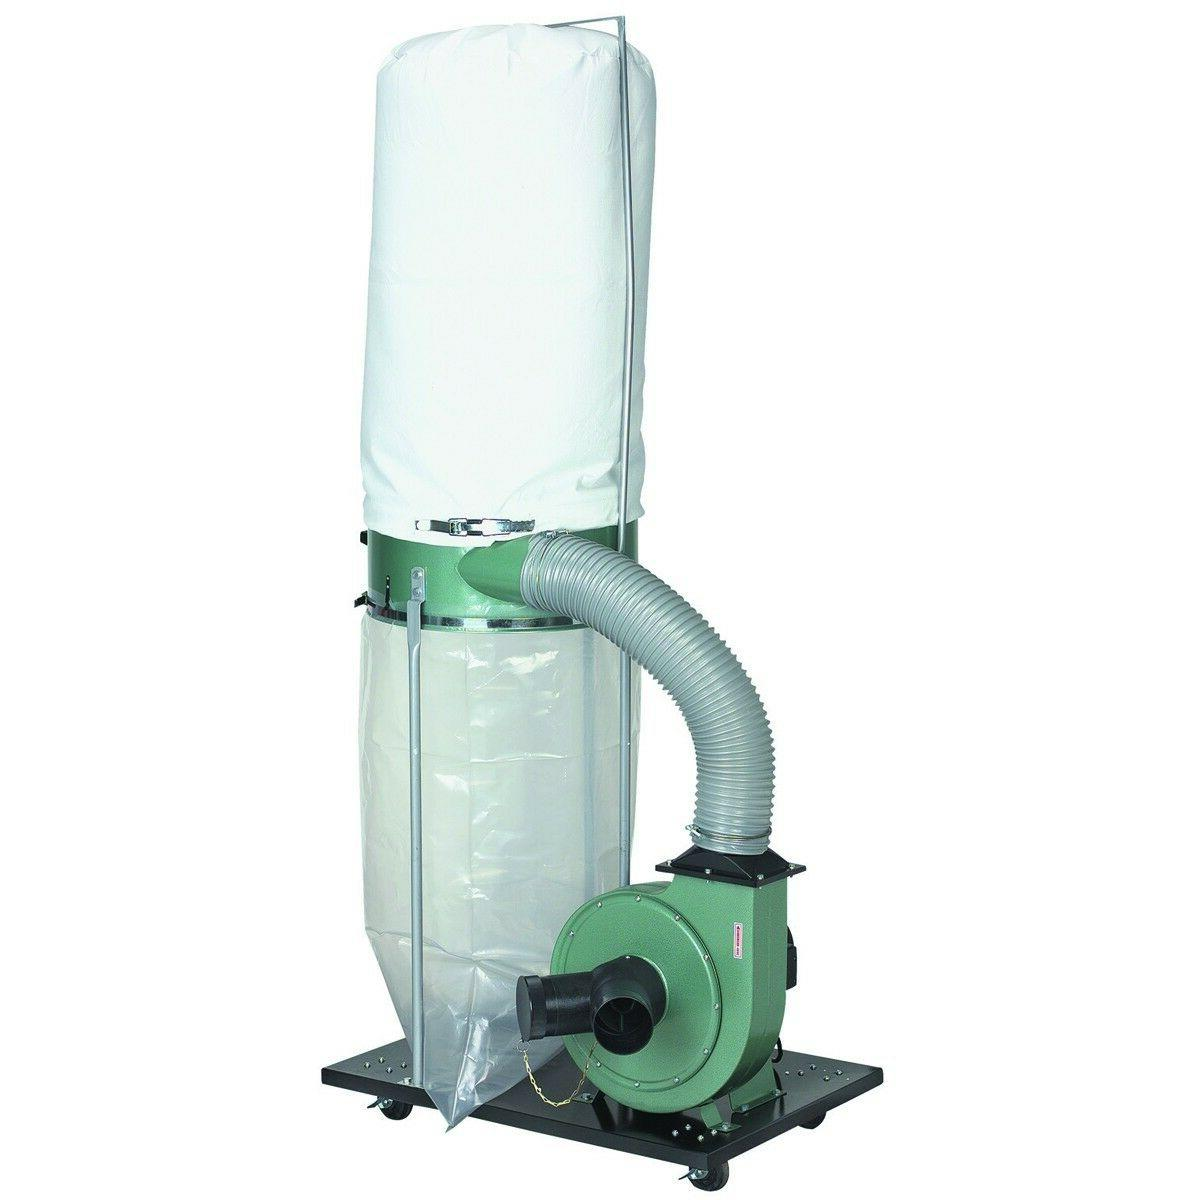 2 HP Motor Light Duty Wood Work Shop Dust Collector Industrial Portable Suction